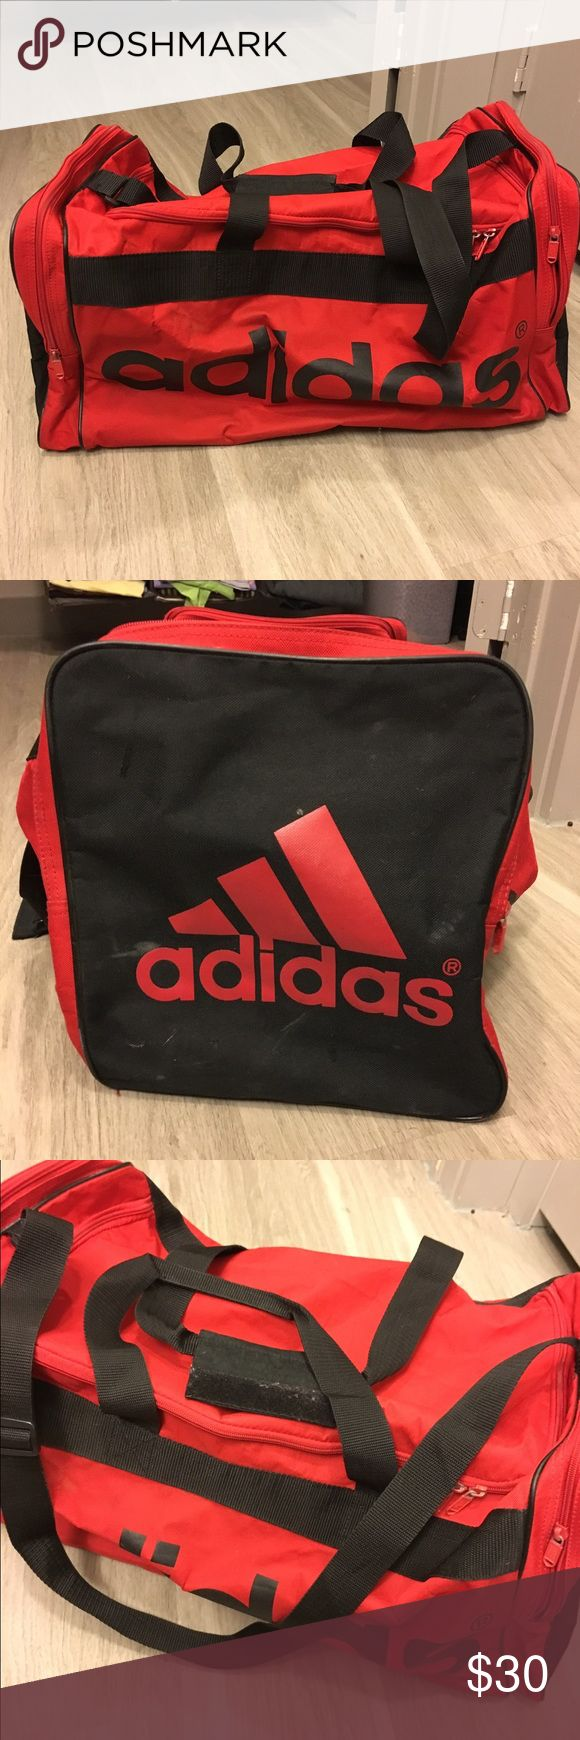 Adidas Duffel Bag Adidas Duffel Bag for the Gym Adidas Bags Duffel Bags